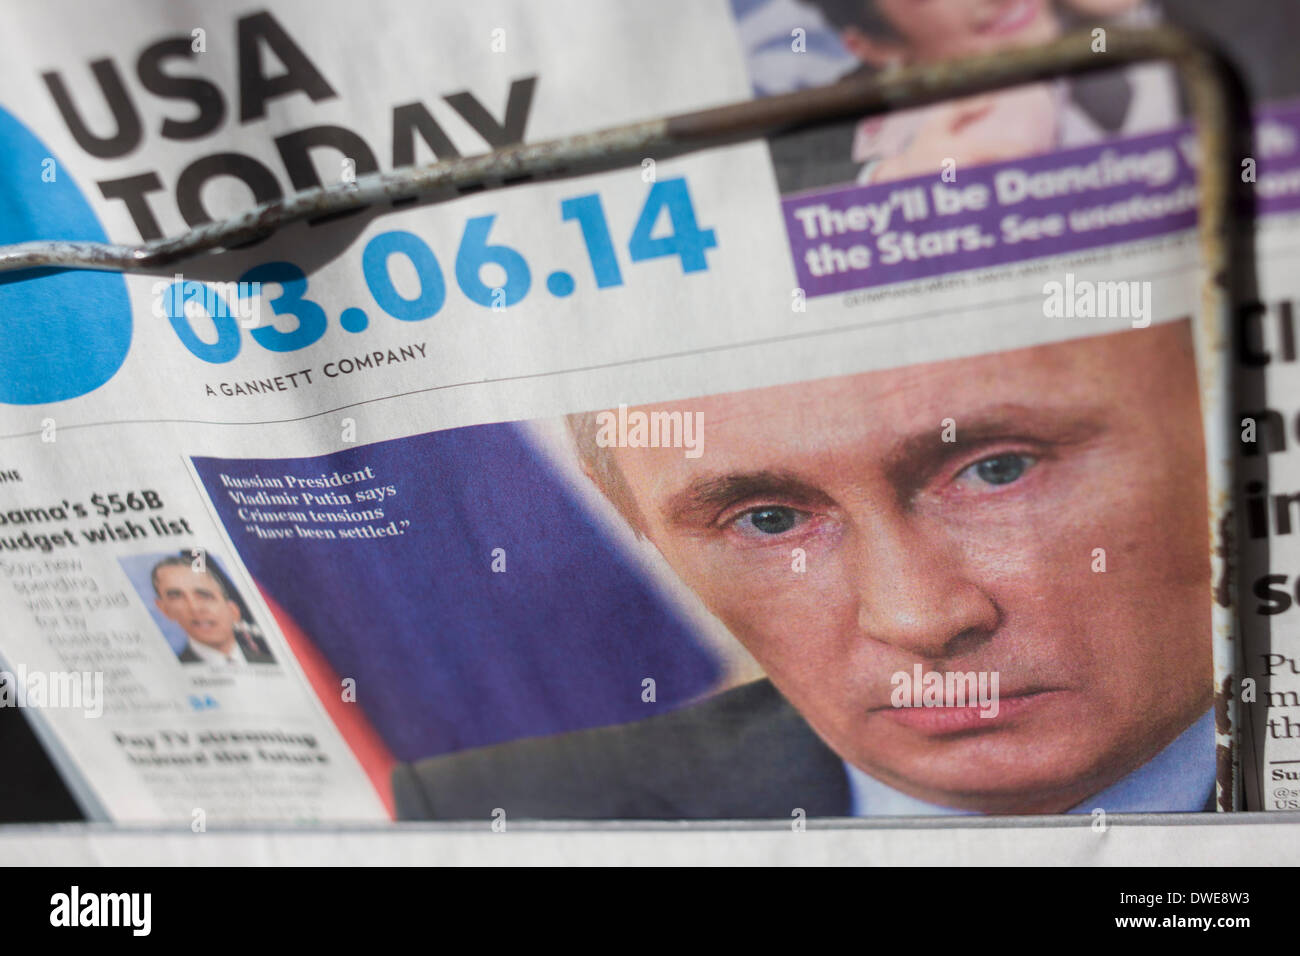 London, 6th March 2014: The face of Russian President Vladimir Vladimirovich Putin looks out from a news stand rack, appearing on the front page of American global newspaper USA Today, a Gannett-owned title. Copyright Richard Baker / Alamy Live News 03/06/14 - Stock Image